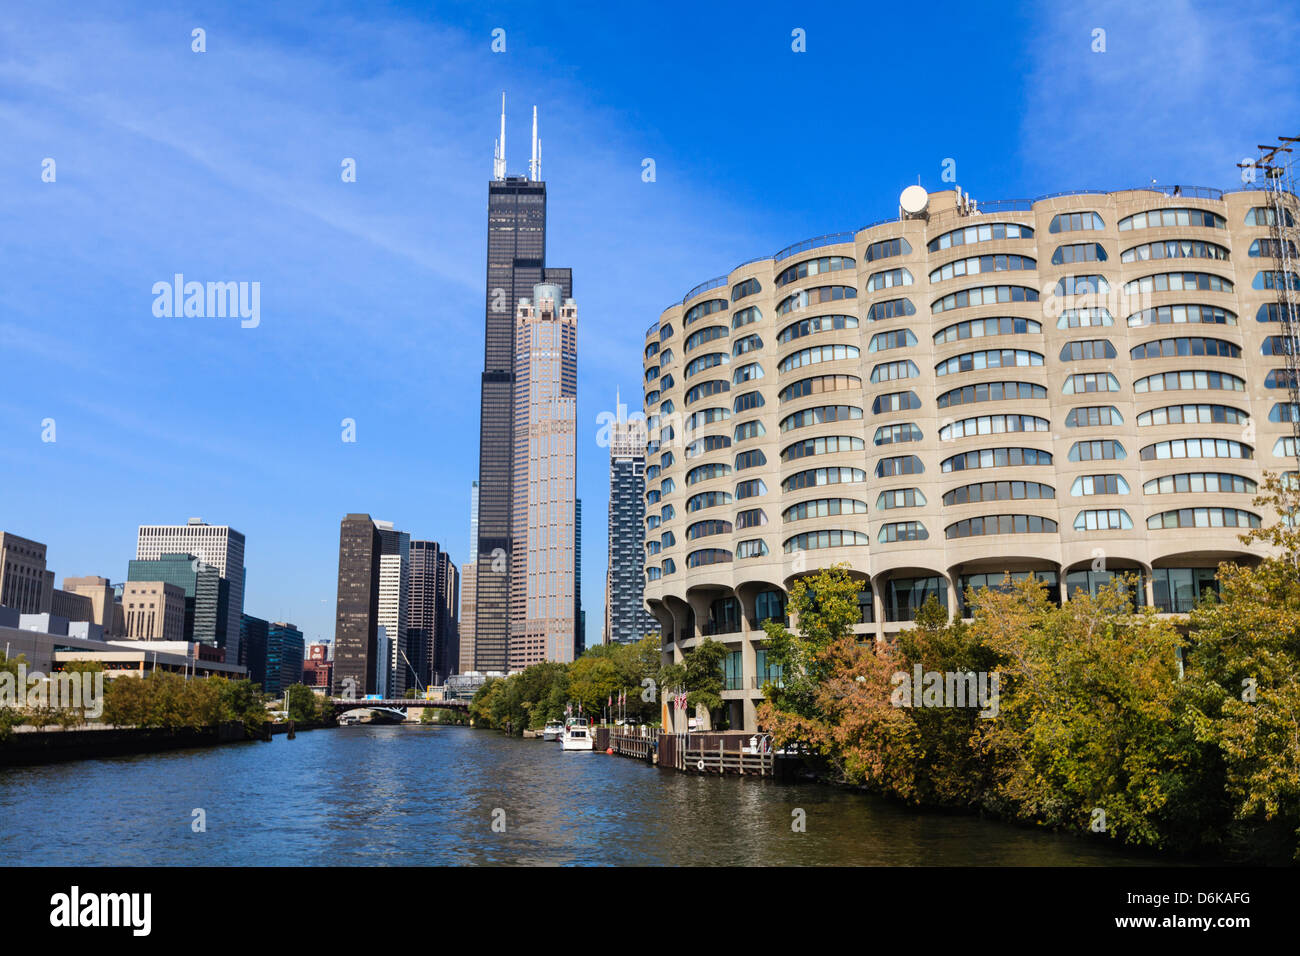 The south branch of the Chicago River, Willis Tower, formerly Sears Tower, in the centre, Chicago, Illinois, USA - Stock Image